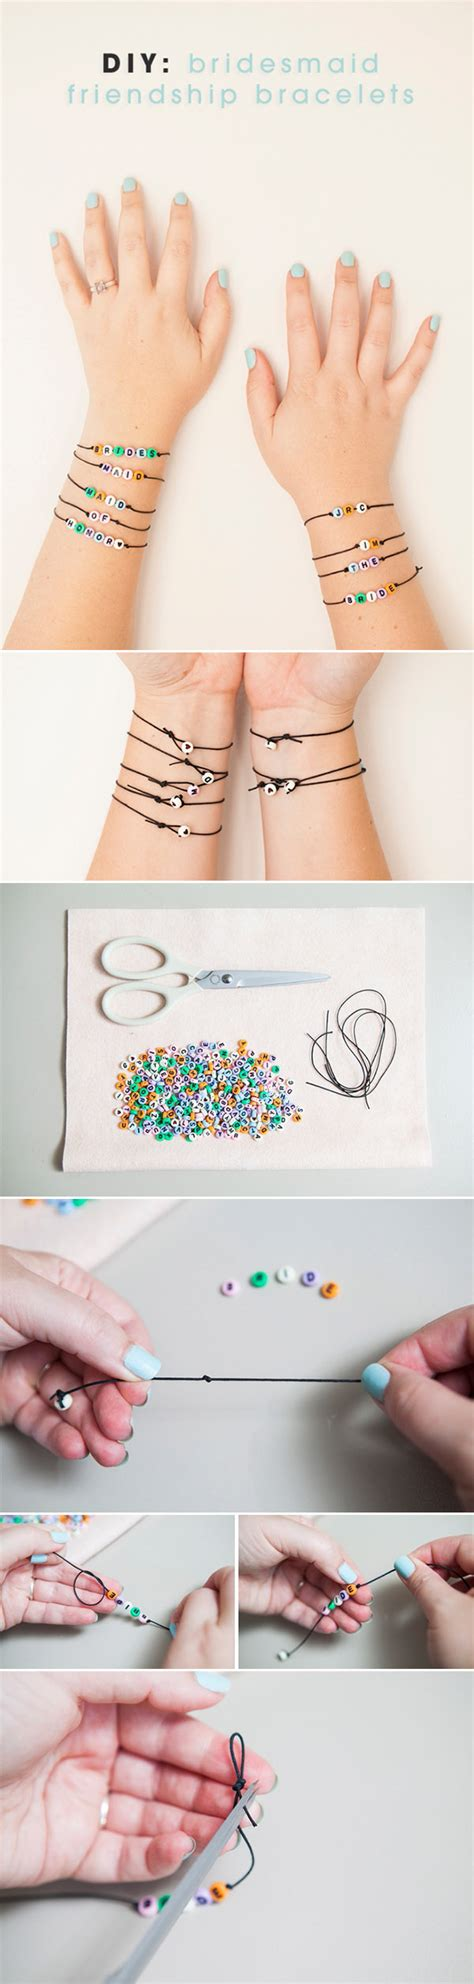 Top 10 Bridesmaid Gifts Ideas They ll Love